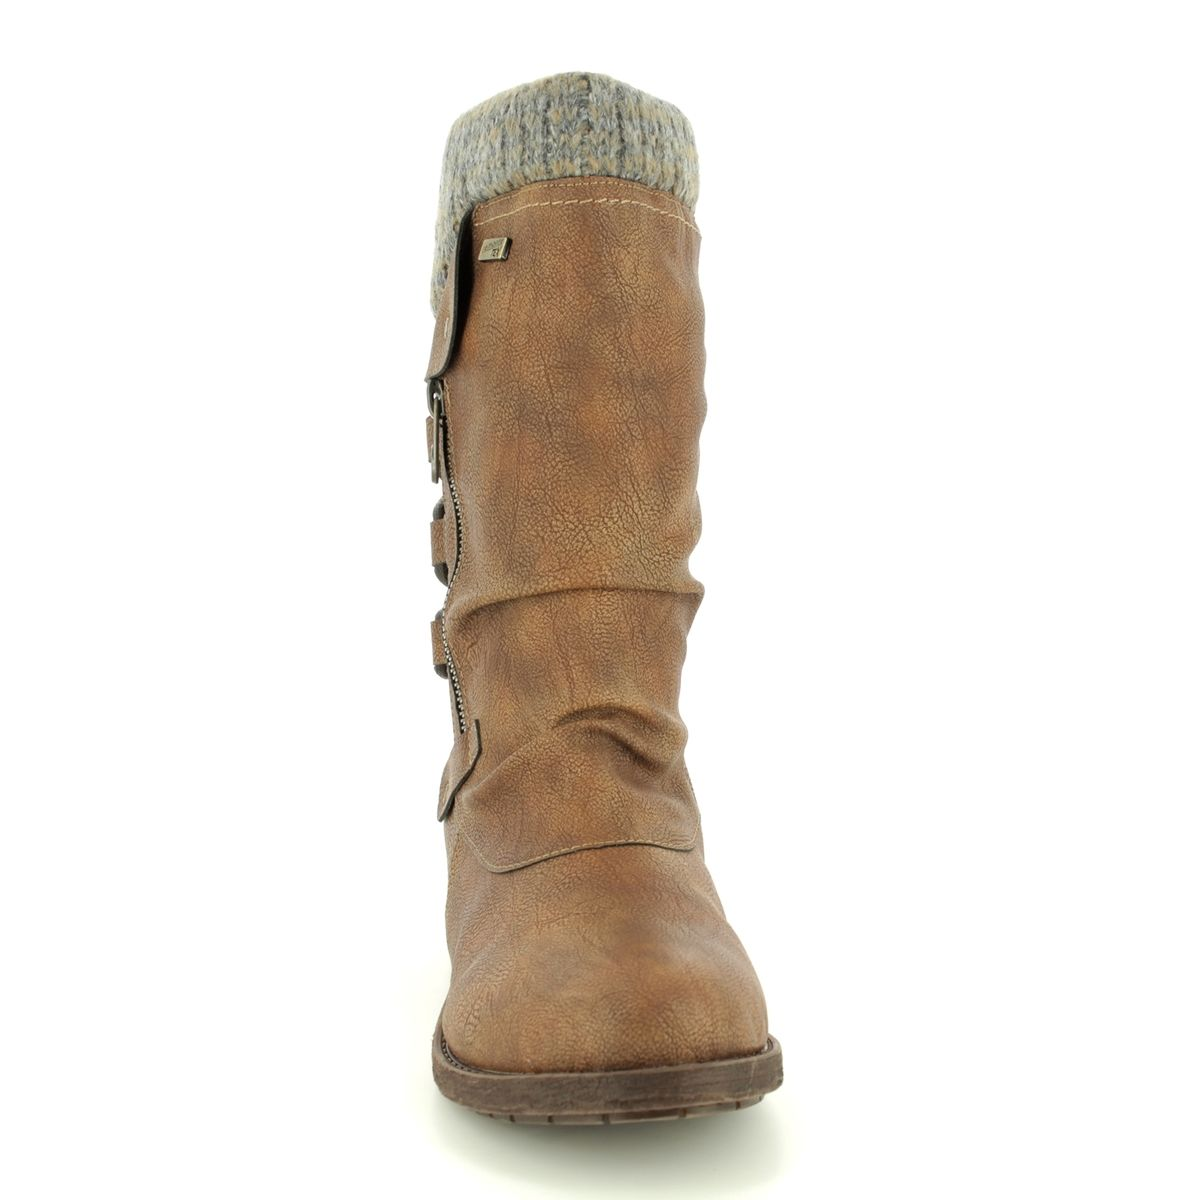 00044a00b8b Remonte Knee-high Boots - Tan - D8070-25 ANDROS TEX